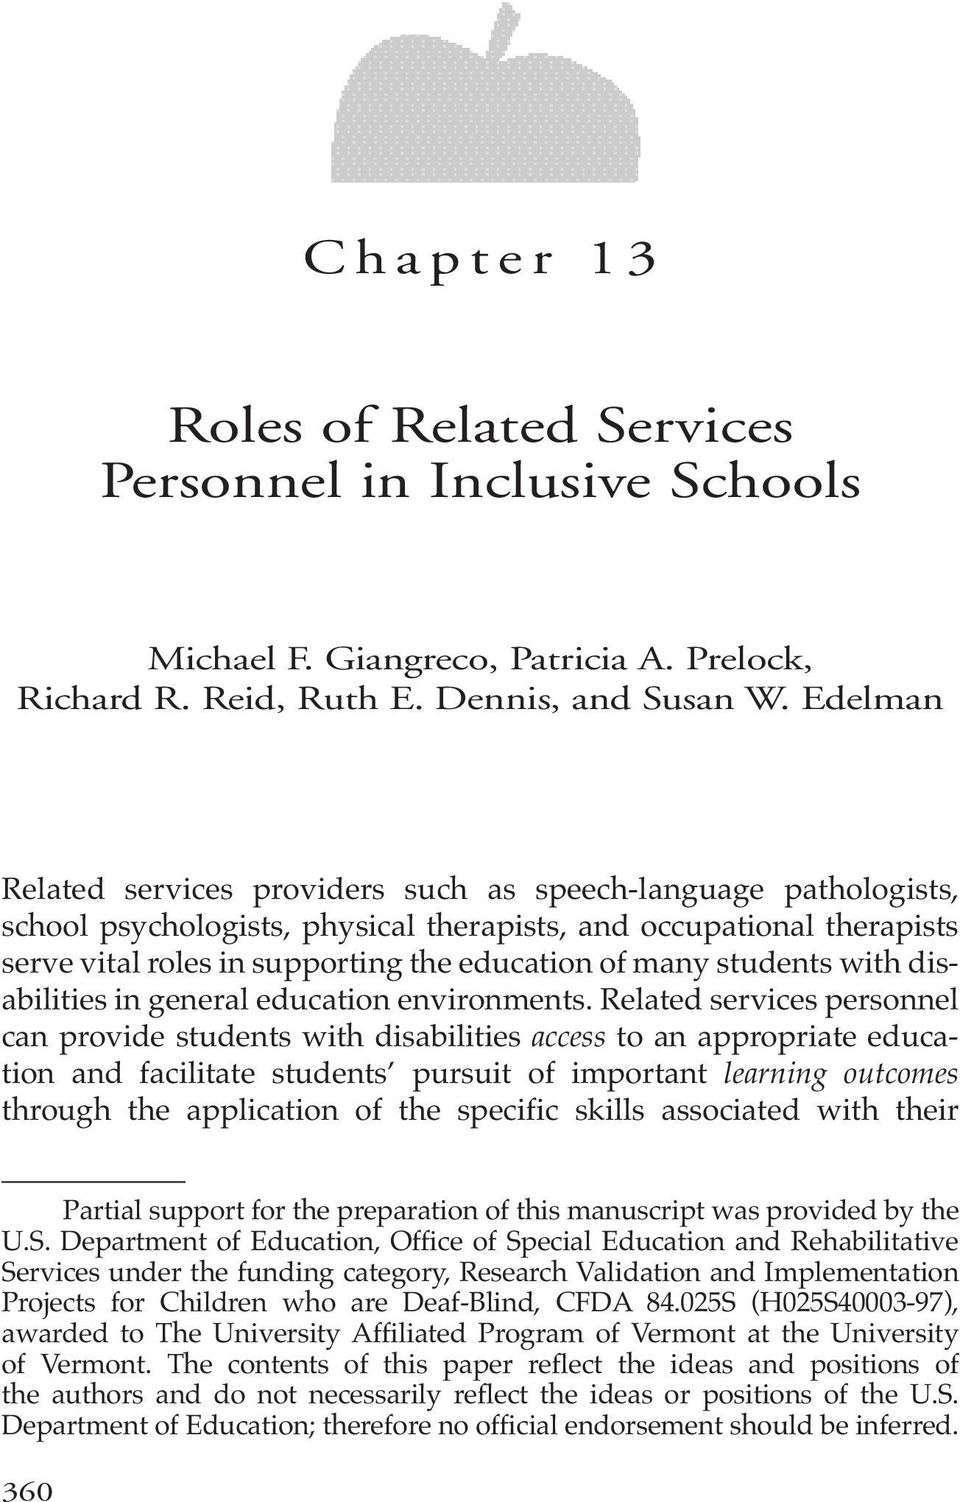 students with disabilities in general education environments.